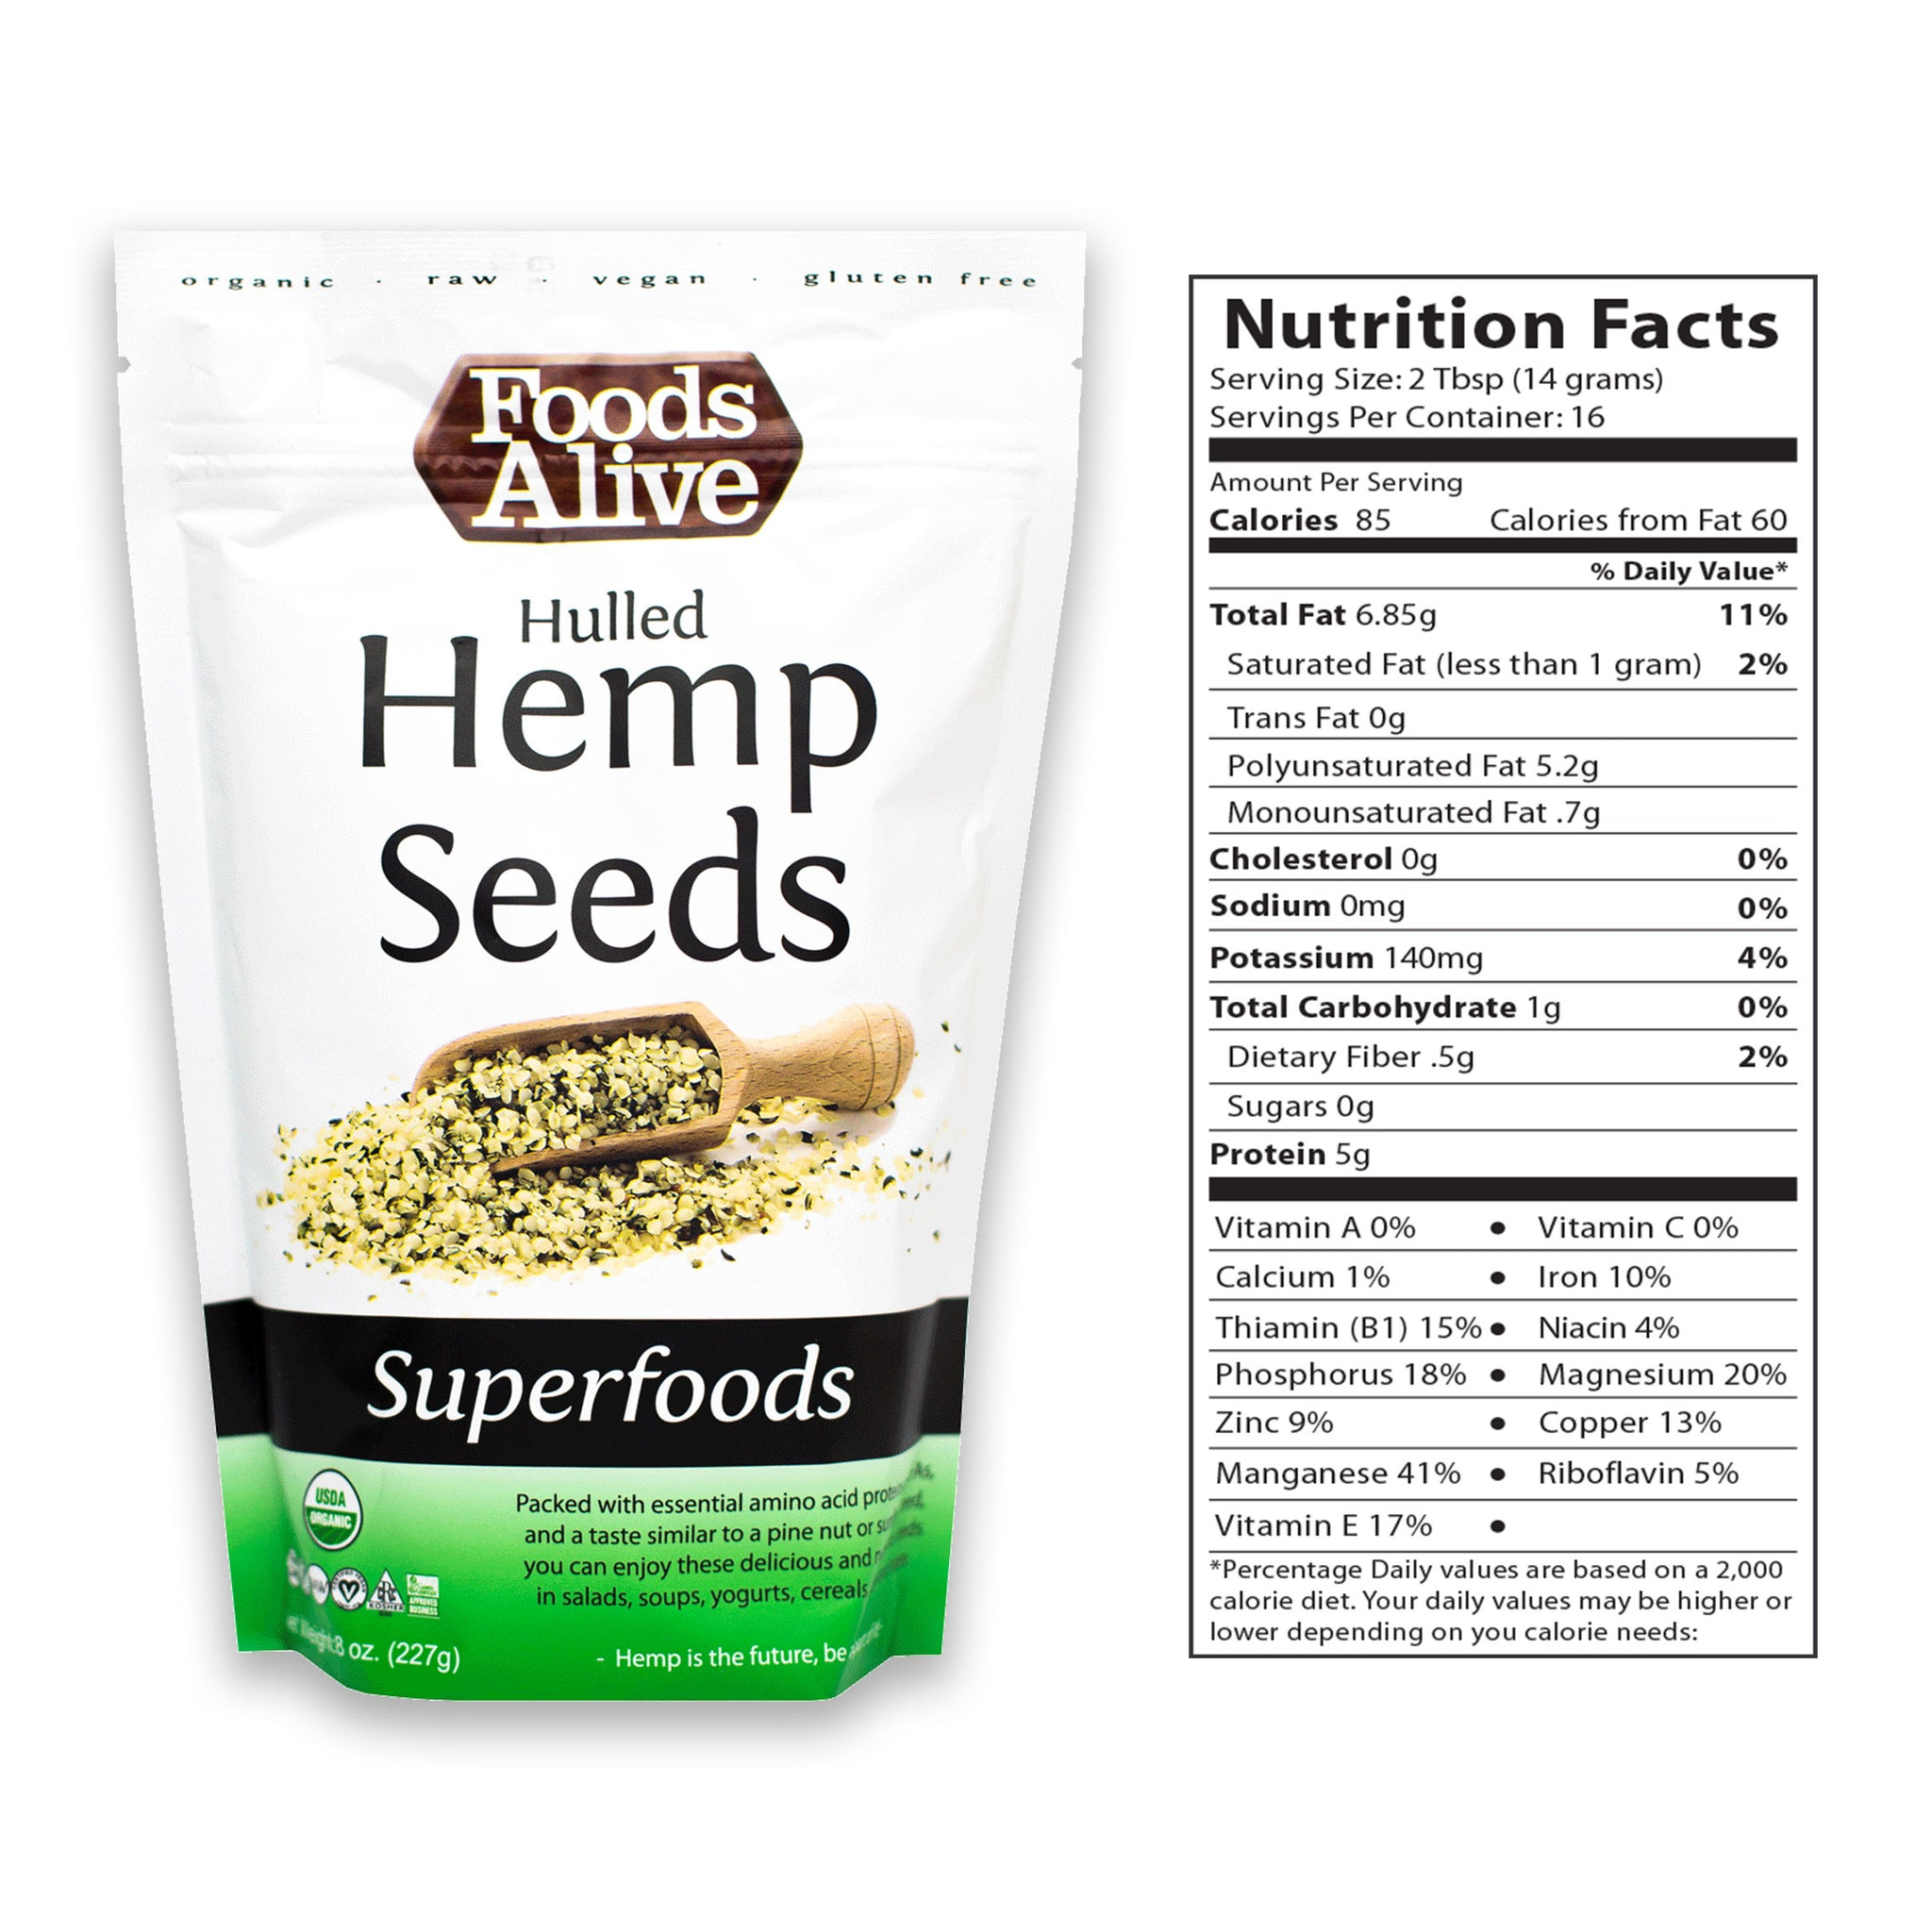 8oz Organic Hulled Hemp Seed - Foods Alive